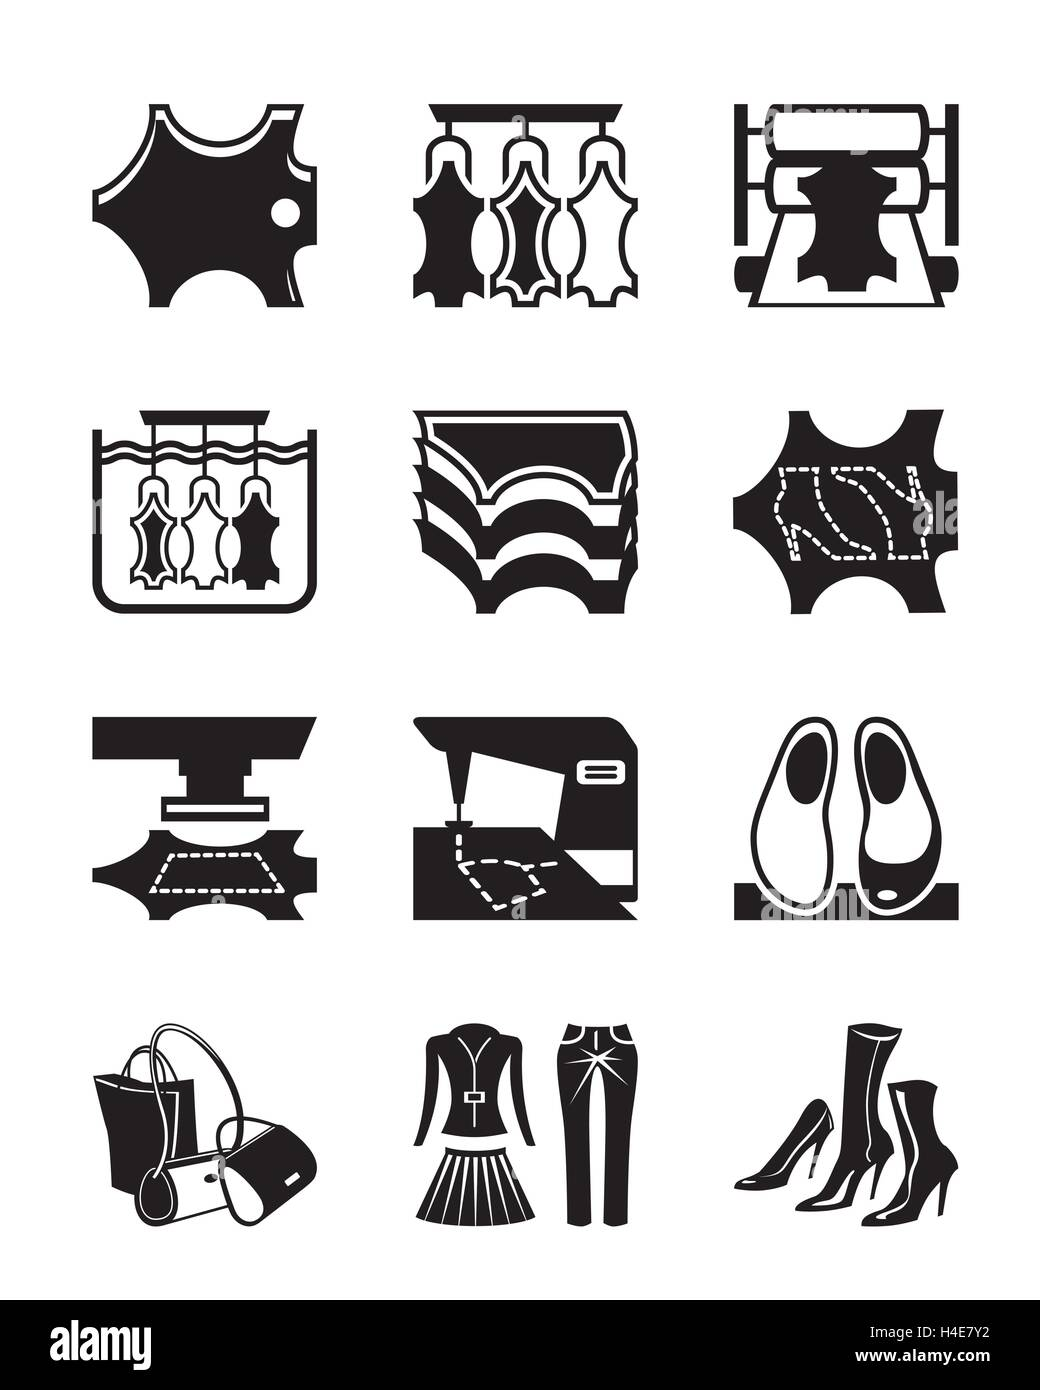 Production of leather clothes and shoes - vector illustration - Stock Image